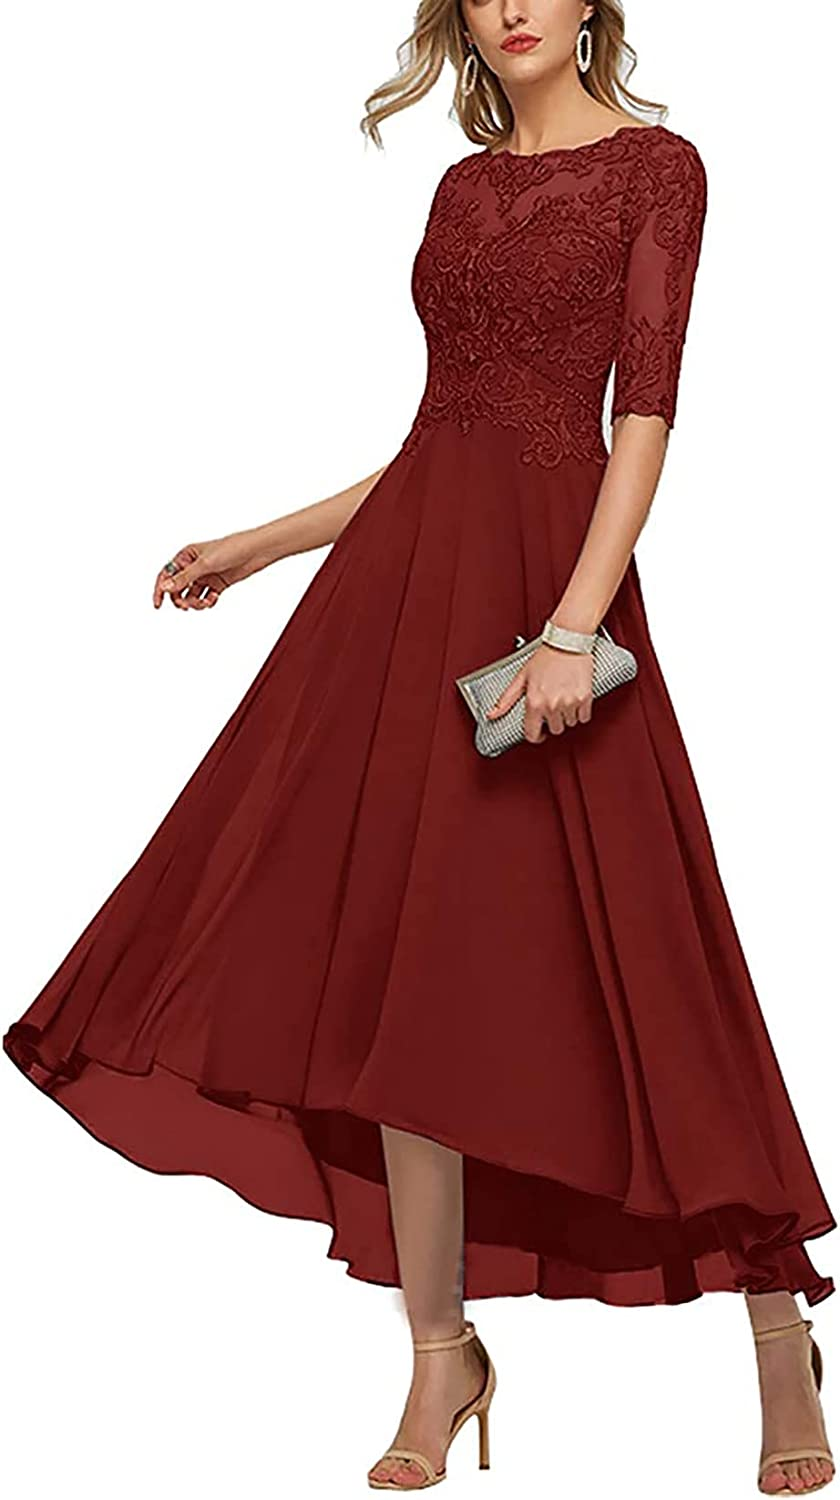 Women's High Low Lace Mother of Bride Dresses for Wedding Formal Party Gowns Illusion Back Chiffon A-Line Skirt